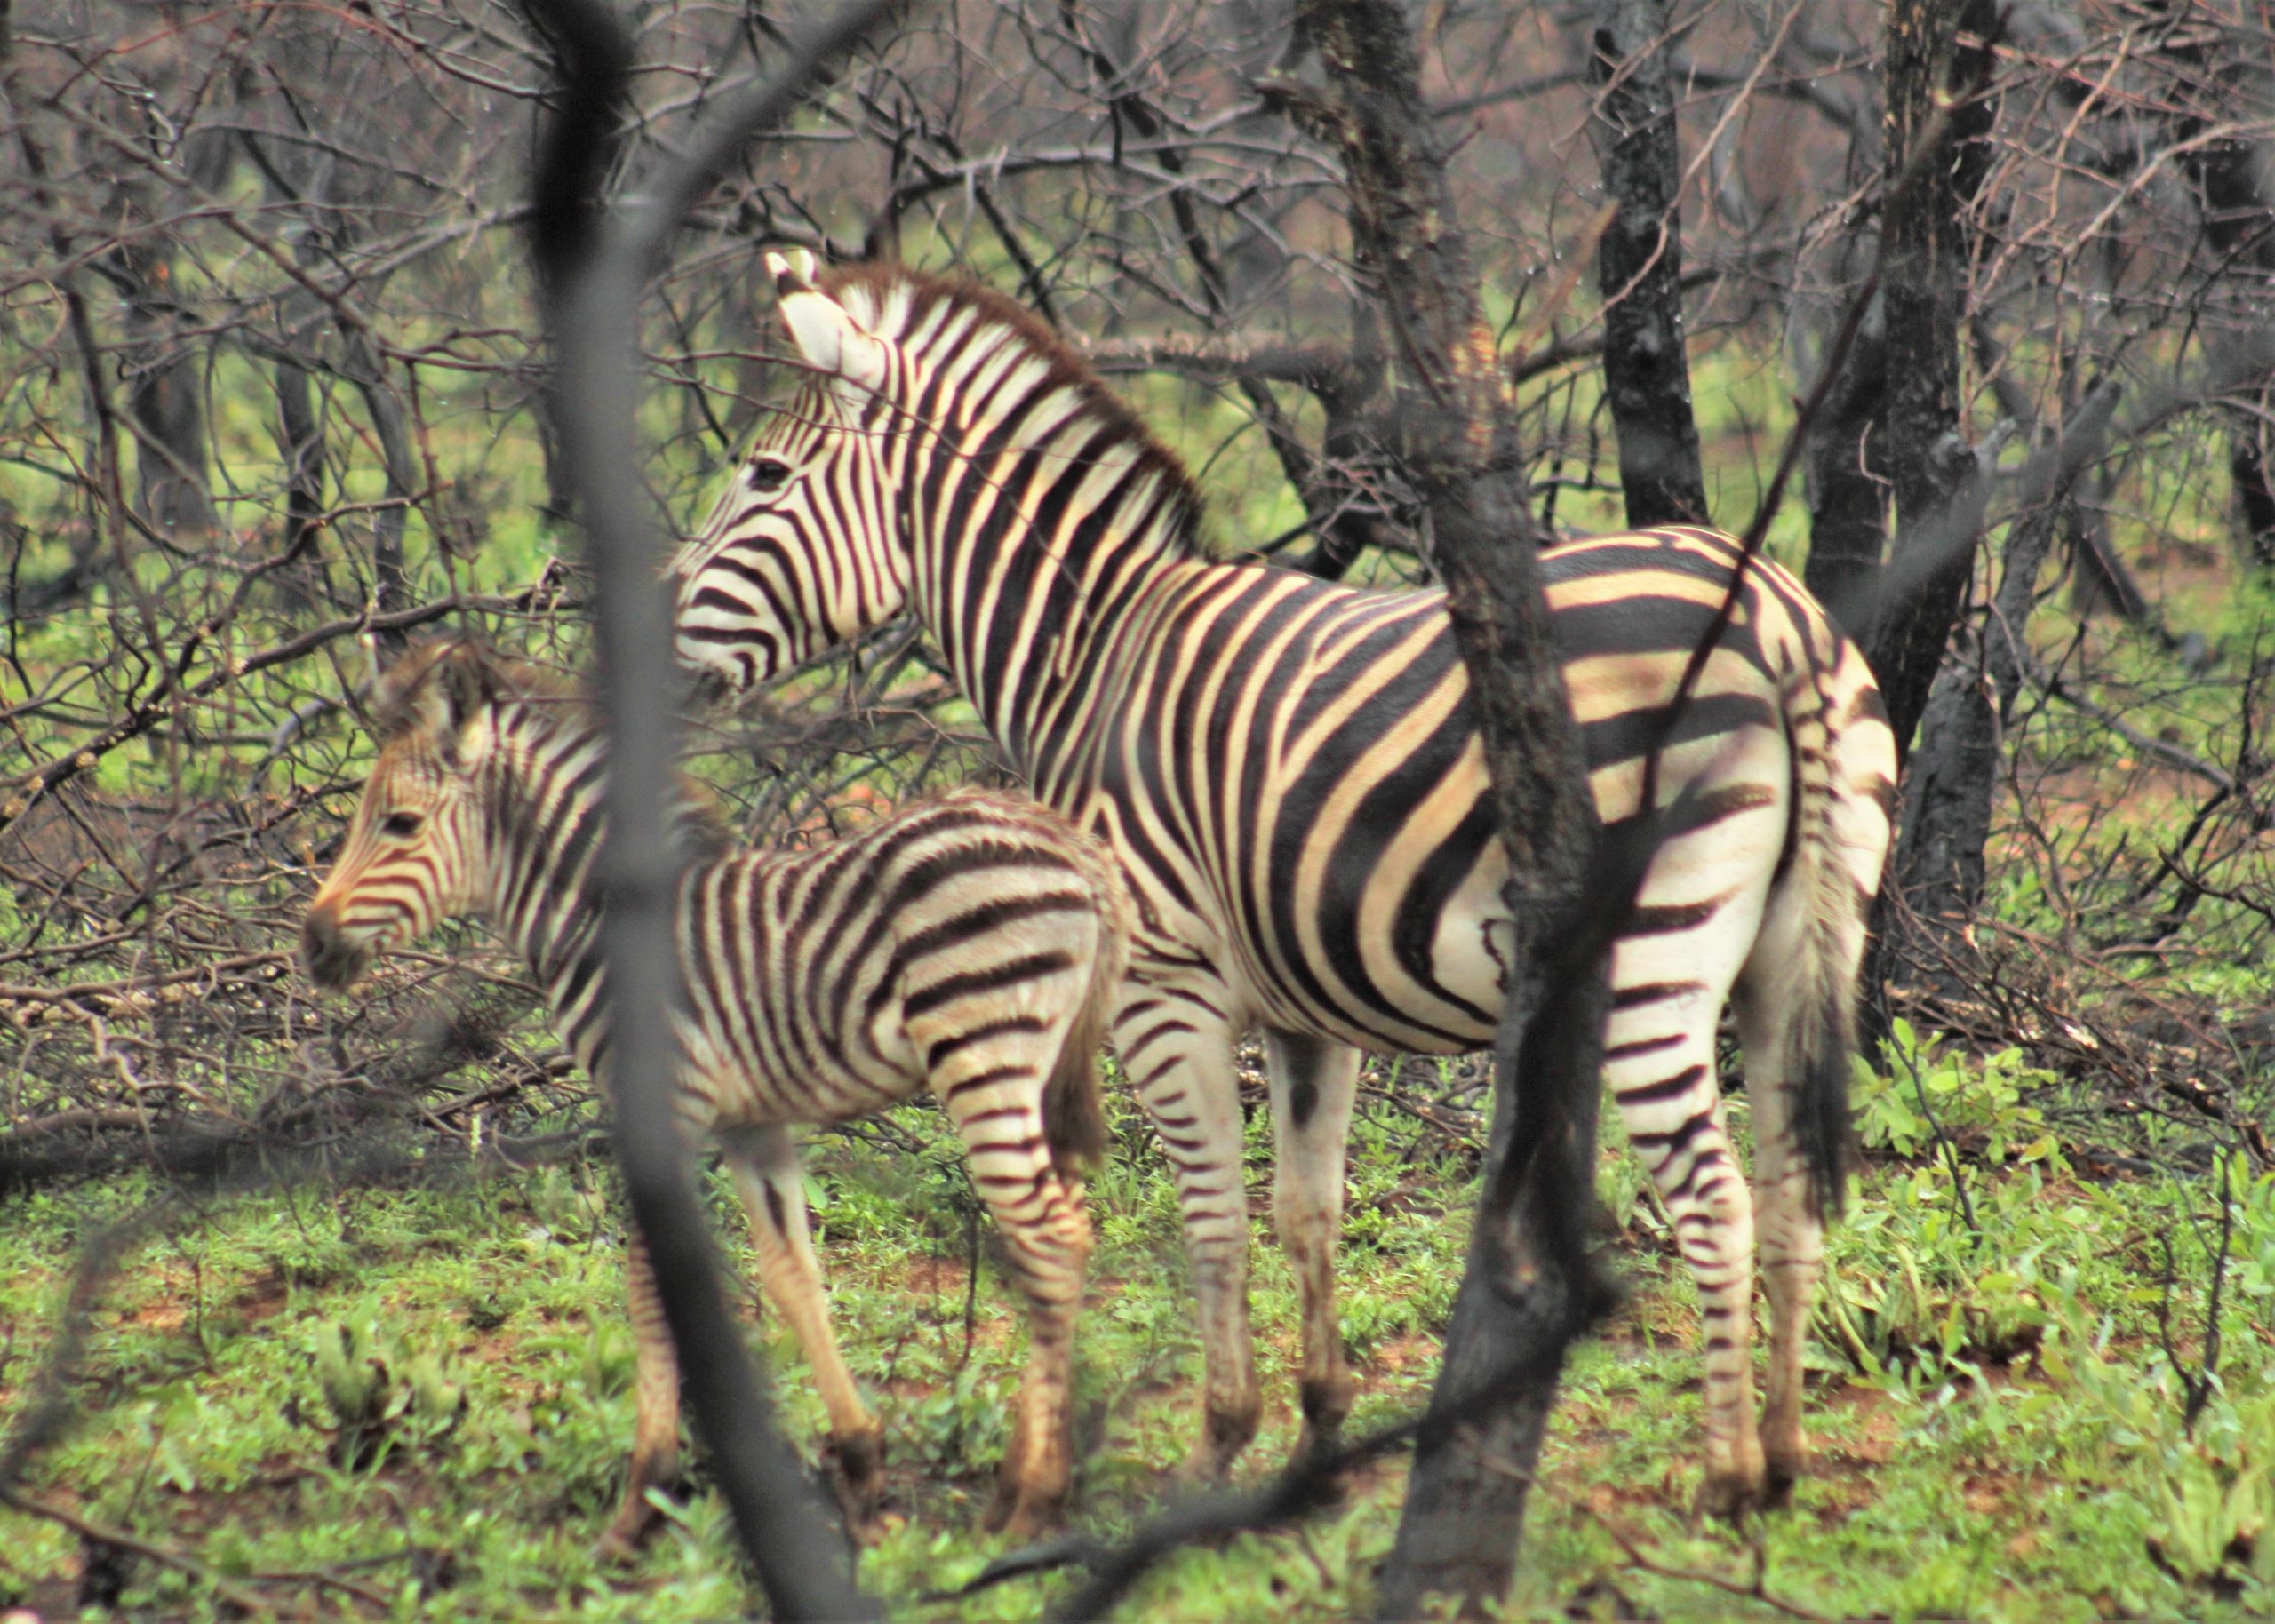 Mom and baby zebra on game drives in South Africa